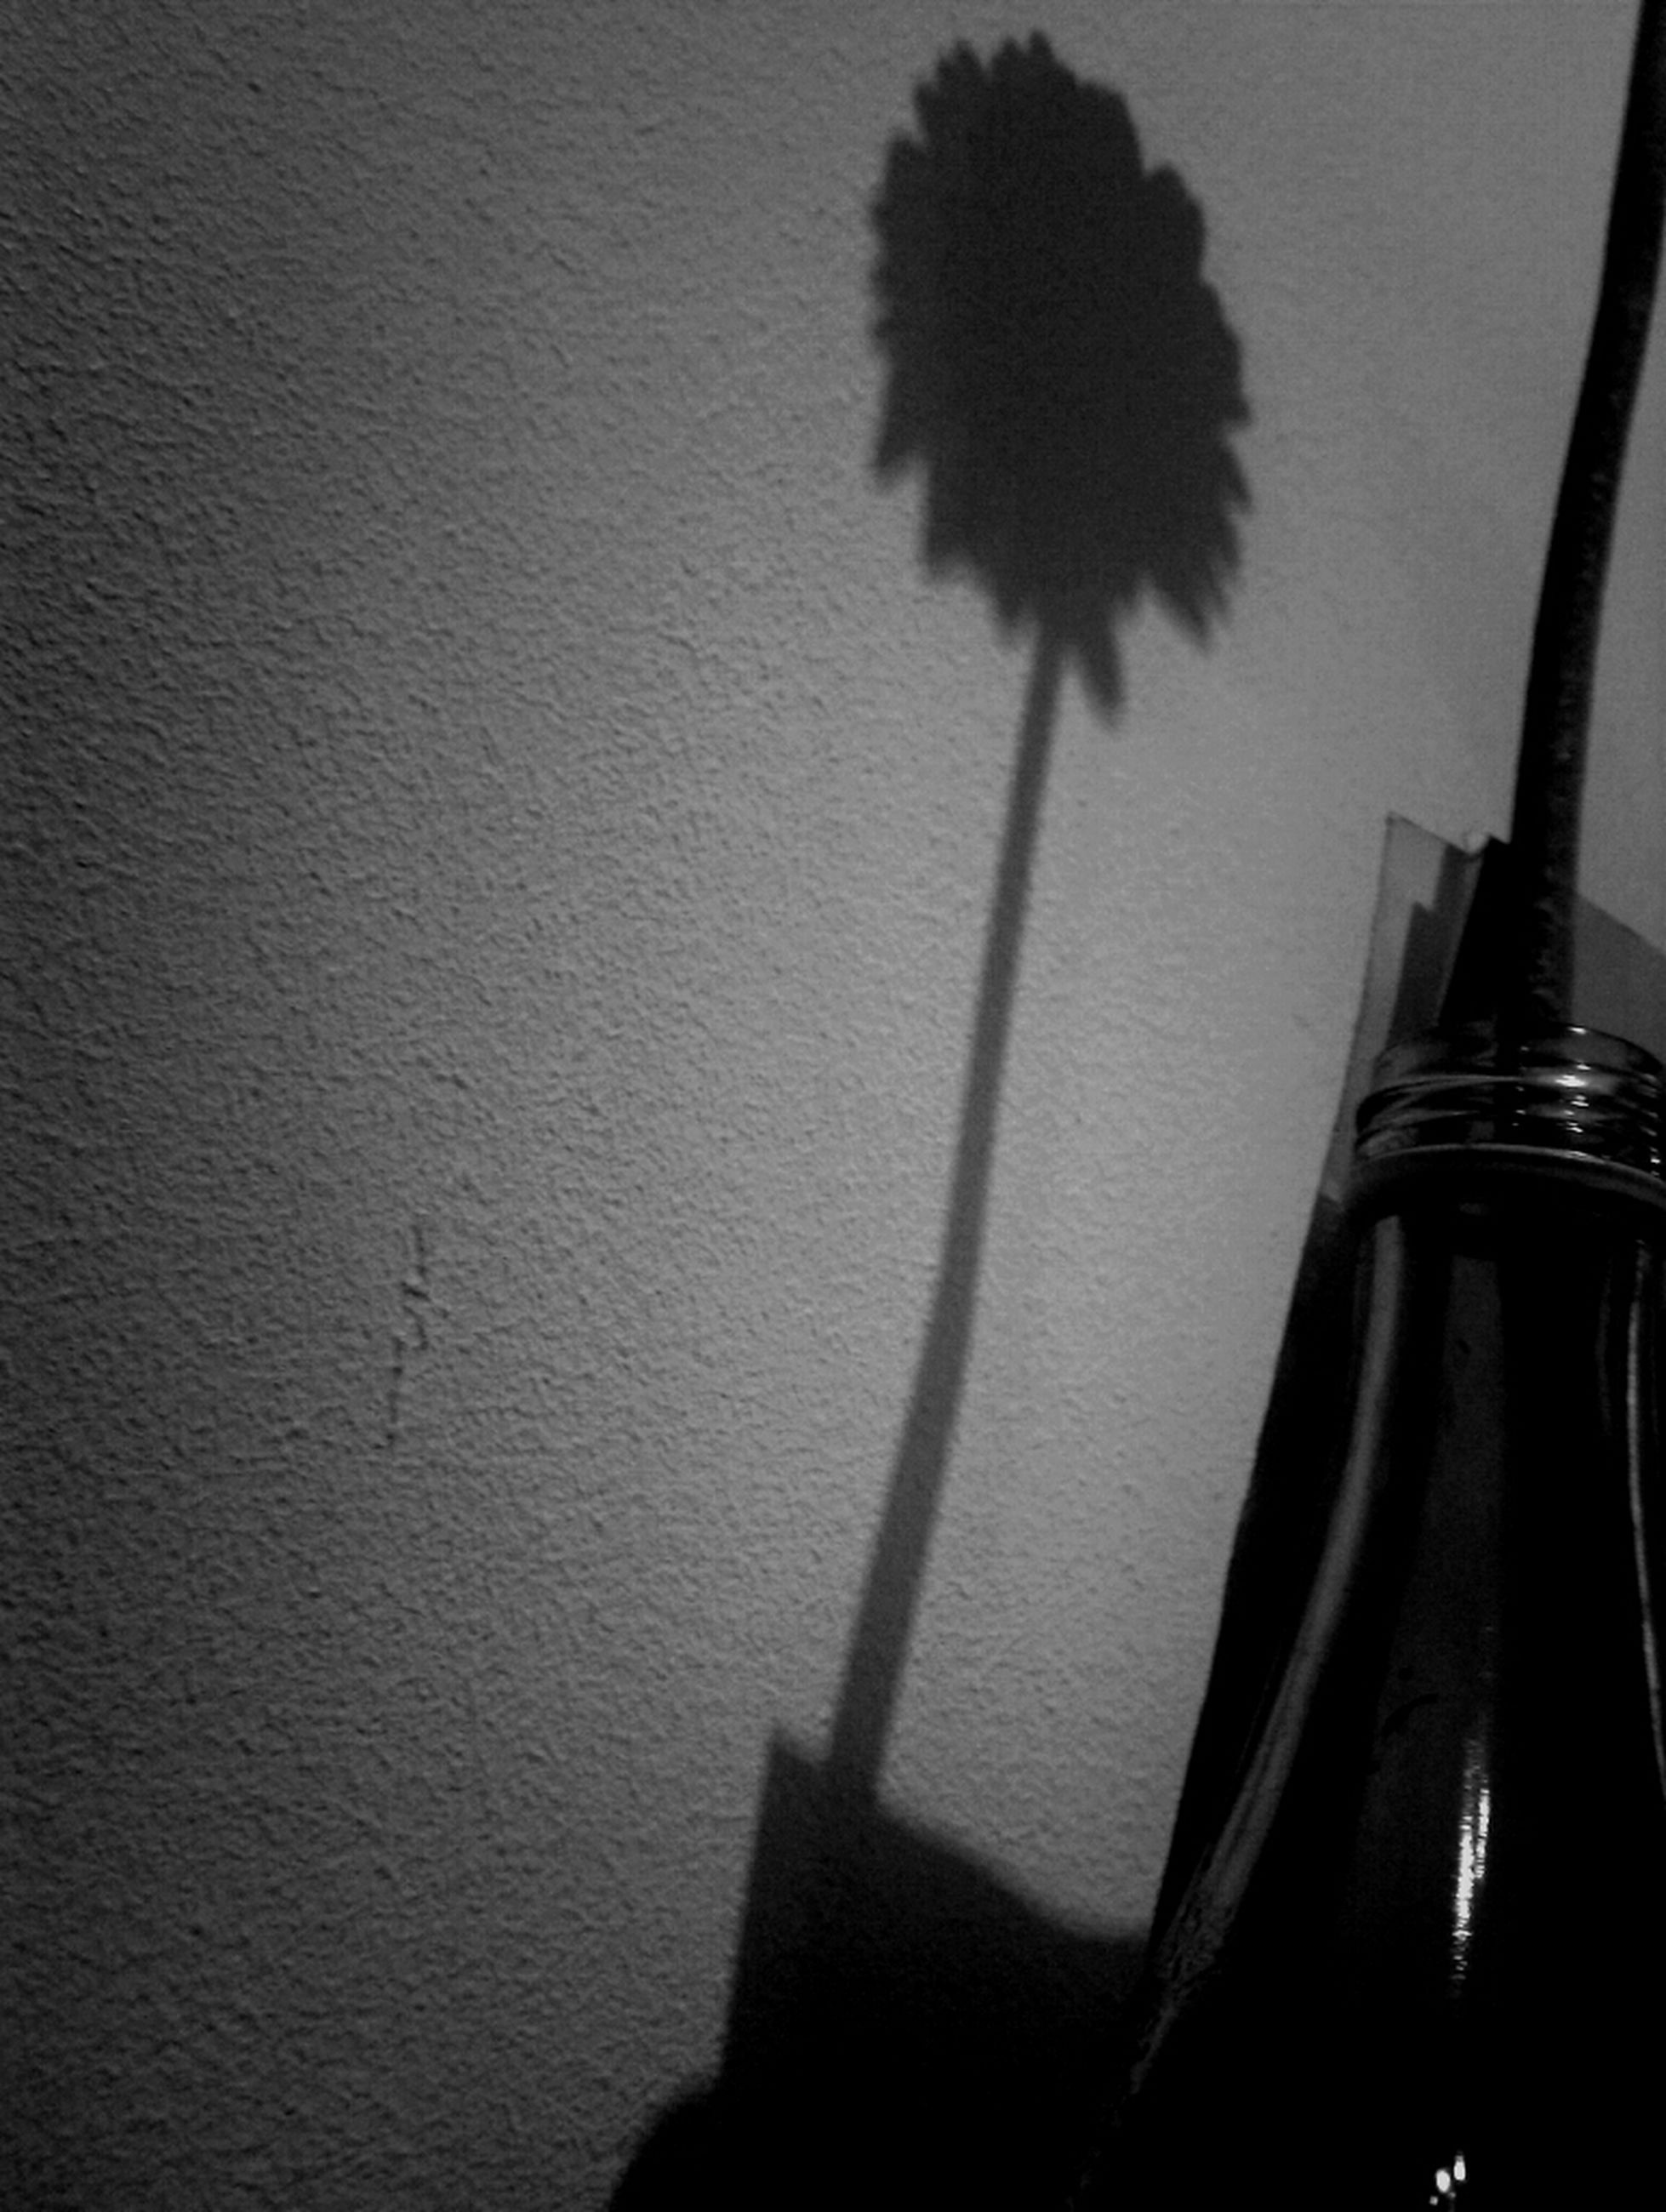 indoors, close-up, still life, table, home interior, no people, vase, flower, wall - building feature, shadow, focus on foreground, potted plant, day, simplicity, glass - material, chair, built structure, sunlight, window, plant